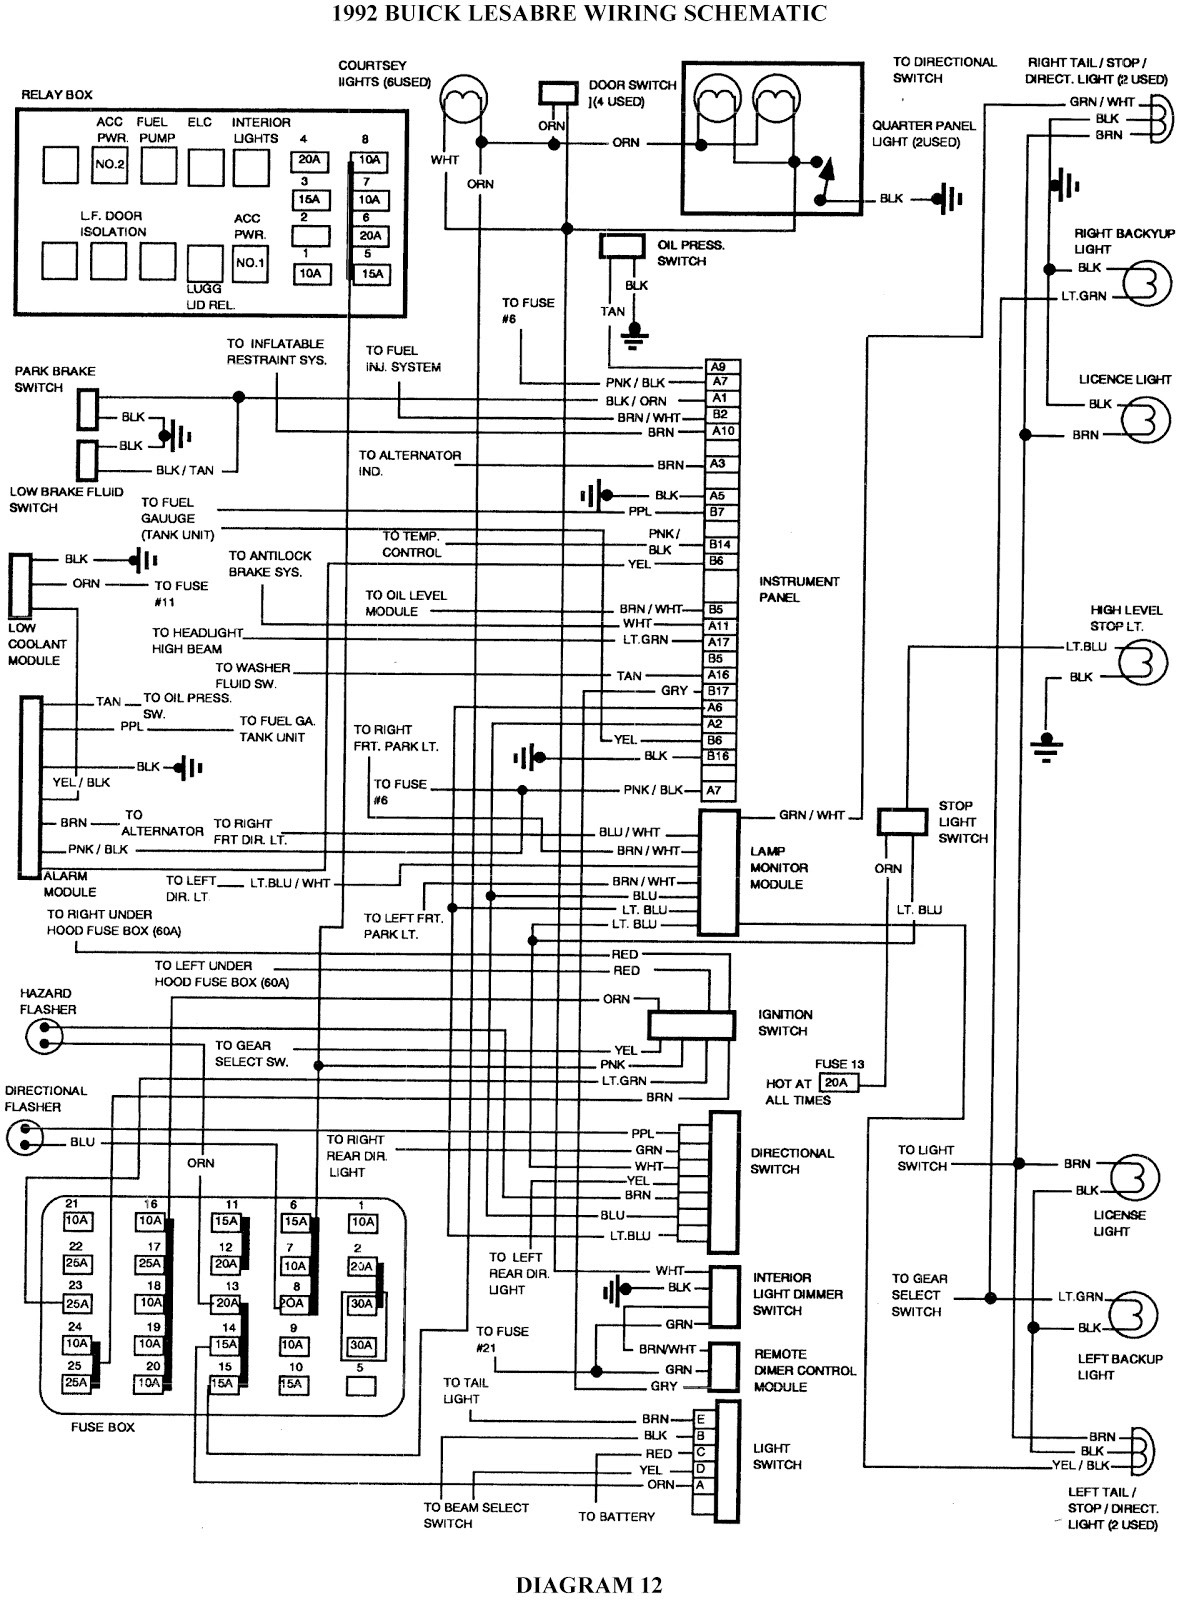 Pic together with B D F F Cf E as well Buick Lesabre Left Rear Seat Fuse Box Diagram X moreover Hqdefault also . on 1995 buick lesabre engine wiring diagrams